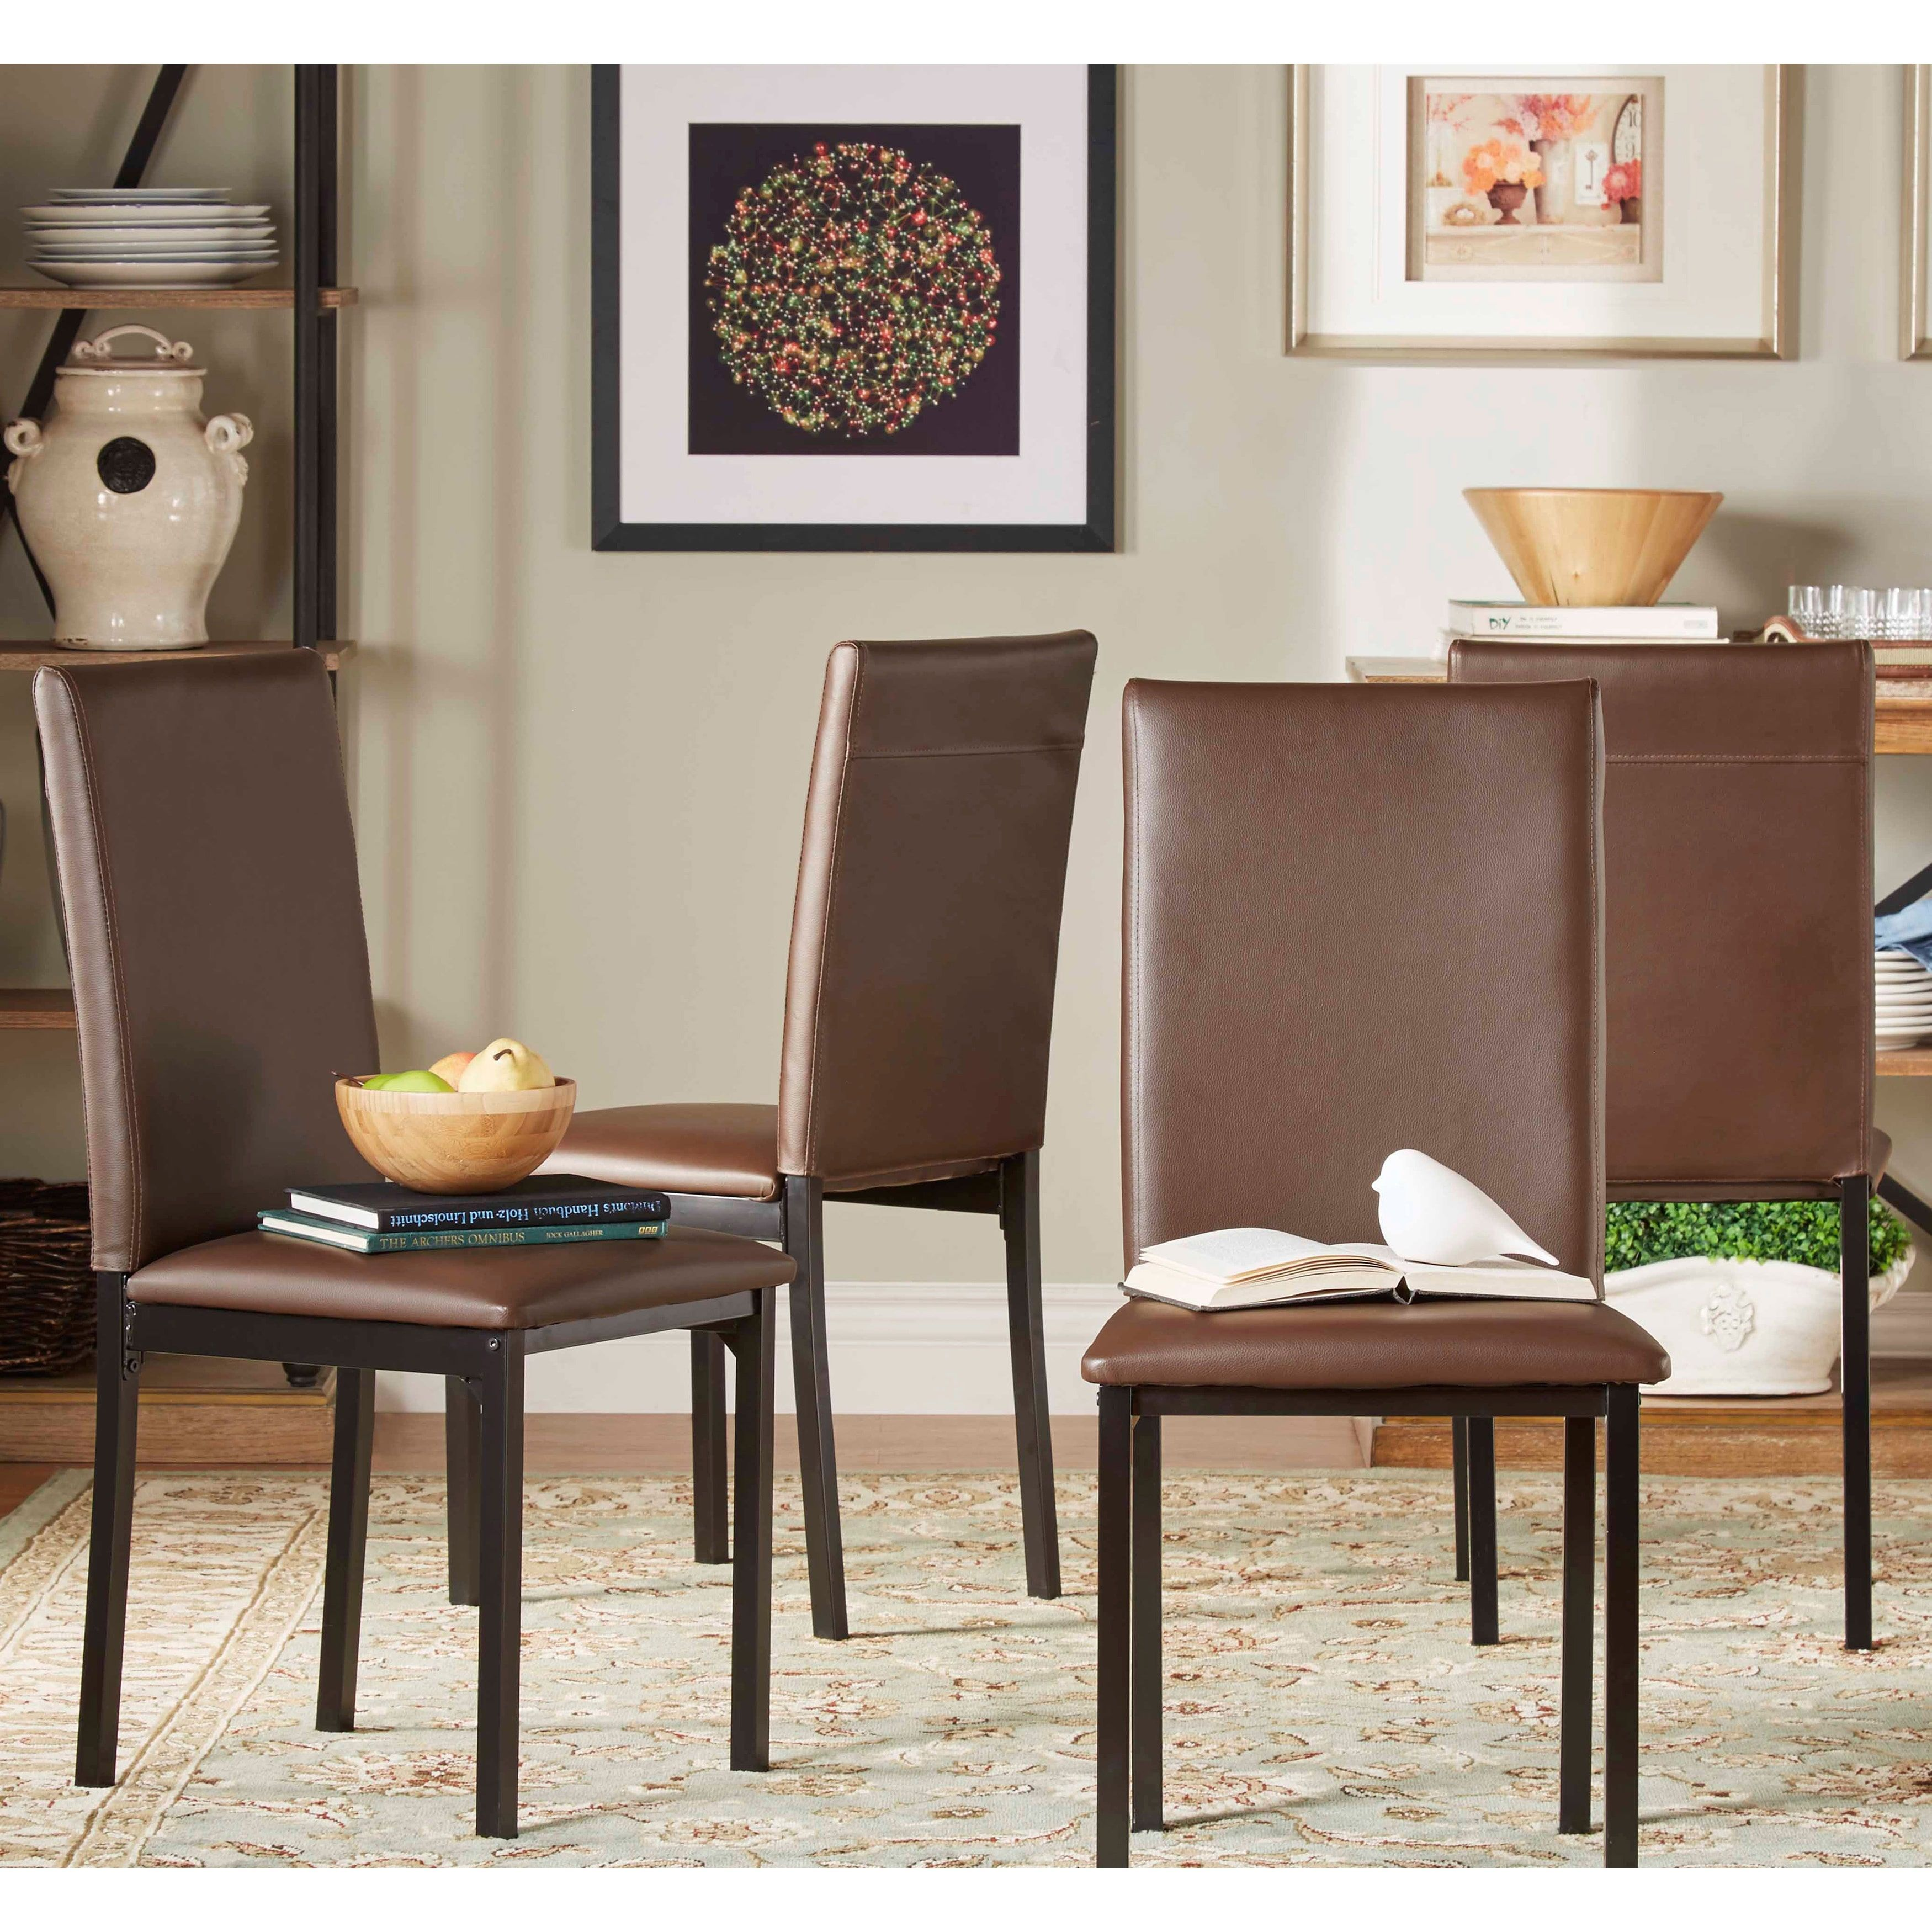 Darcy Metal Upholstered Dining Chair (Set of 4) by iNSPIRE Q Bold (Grey)